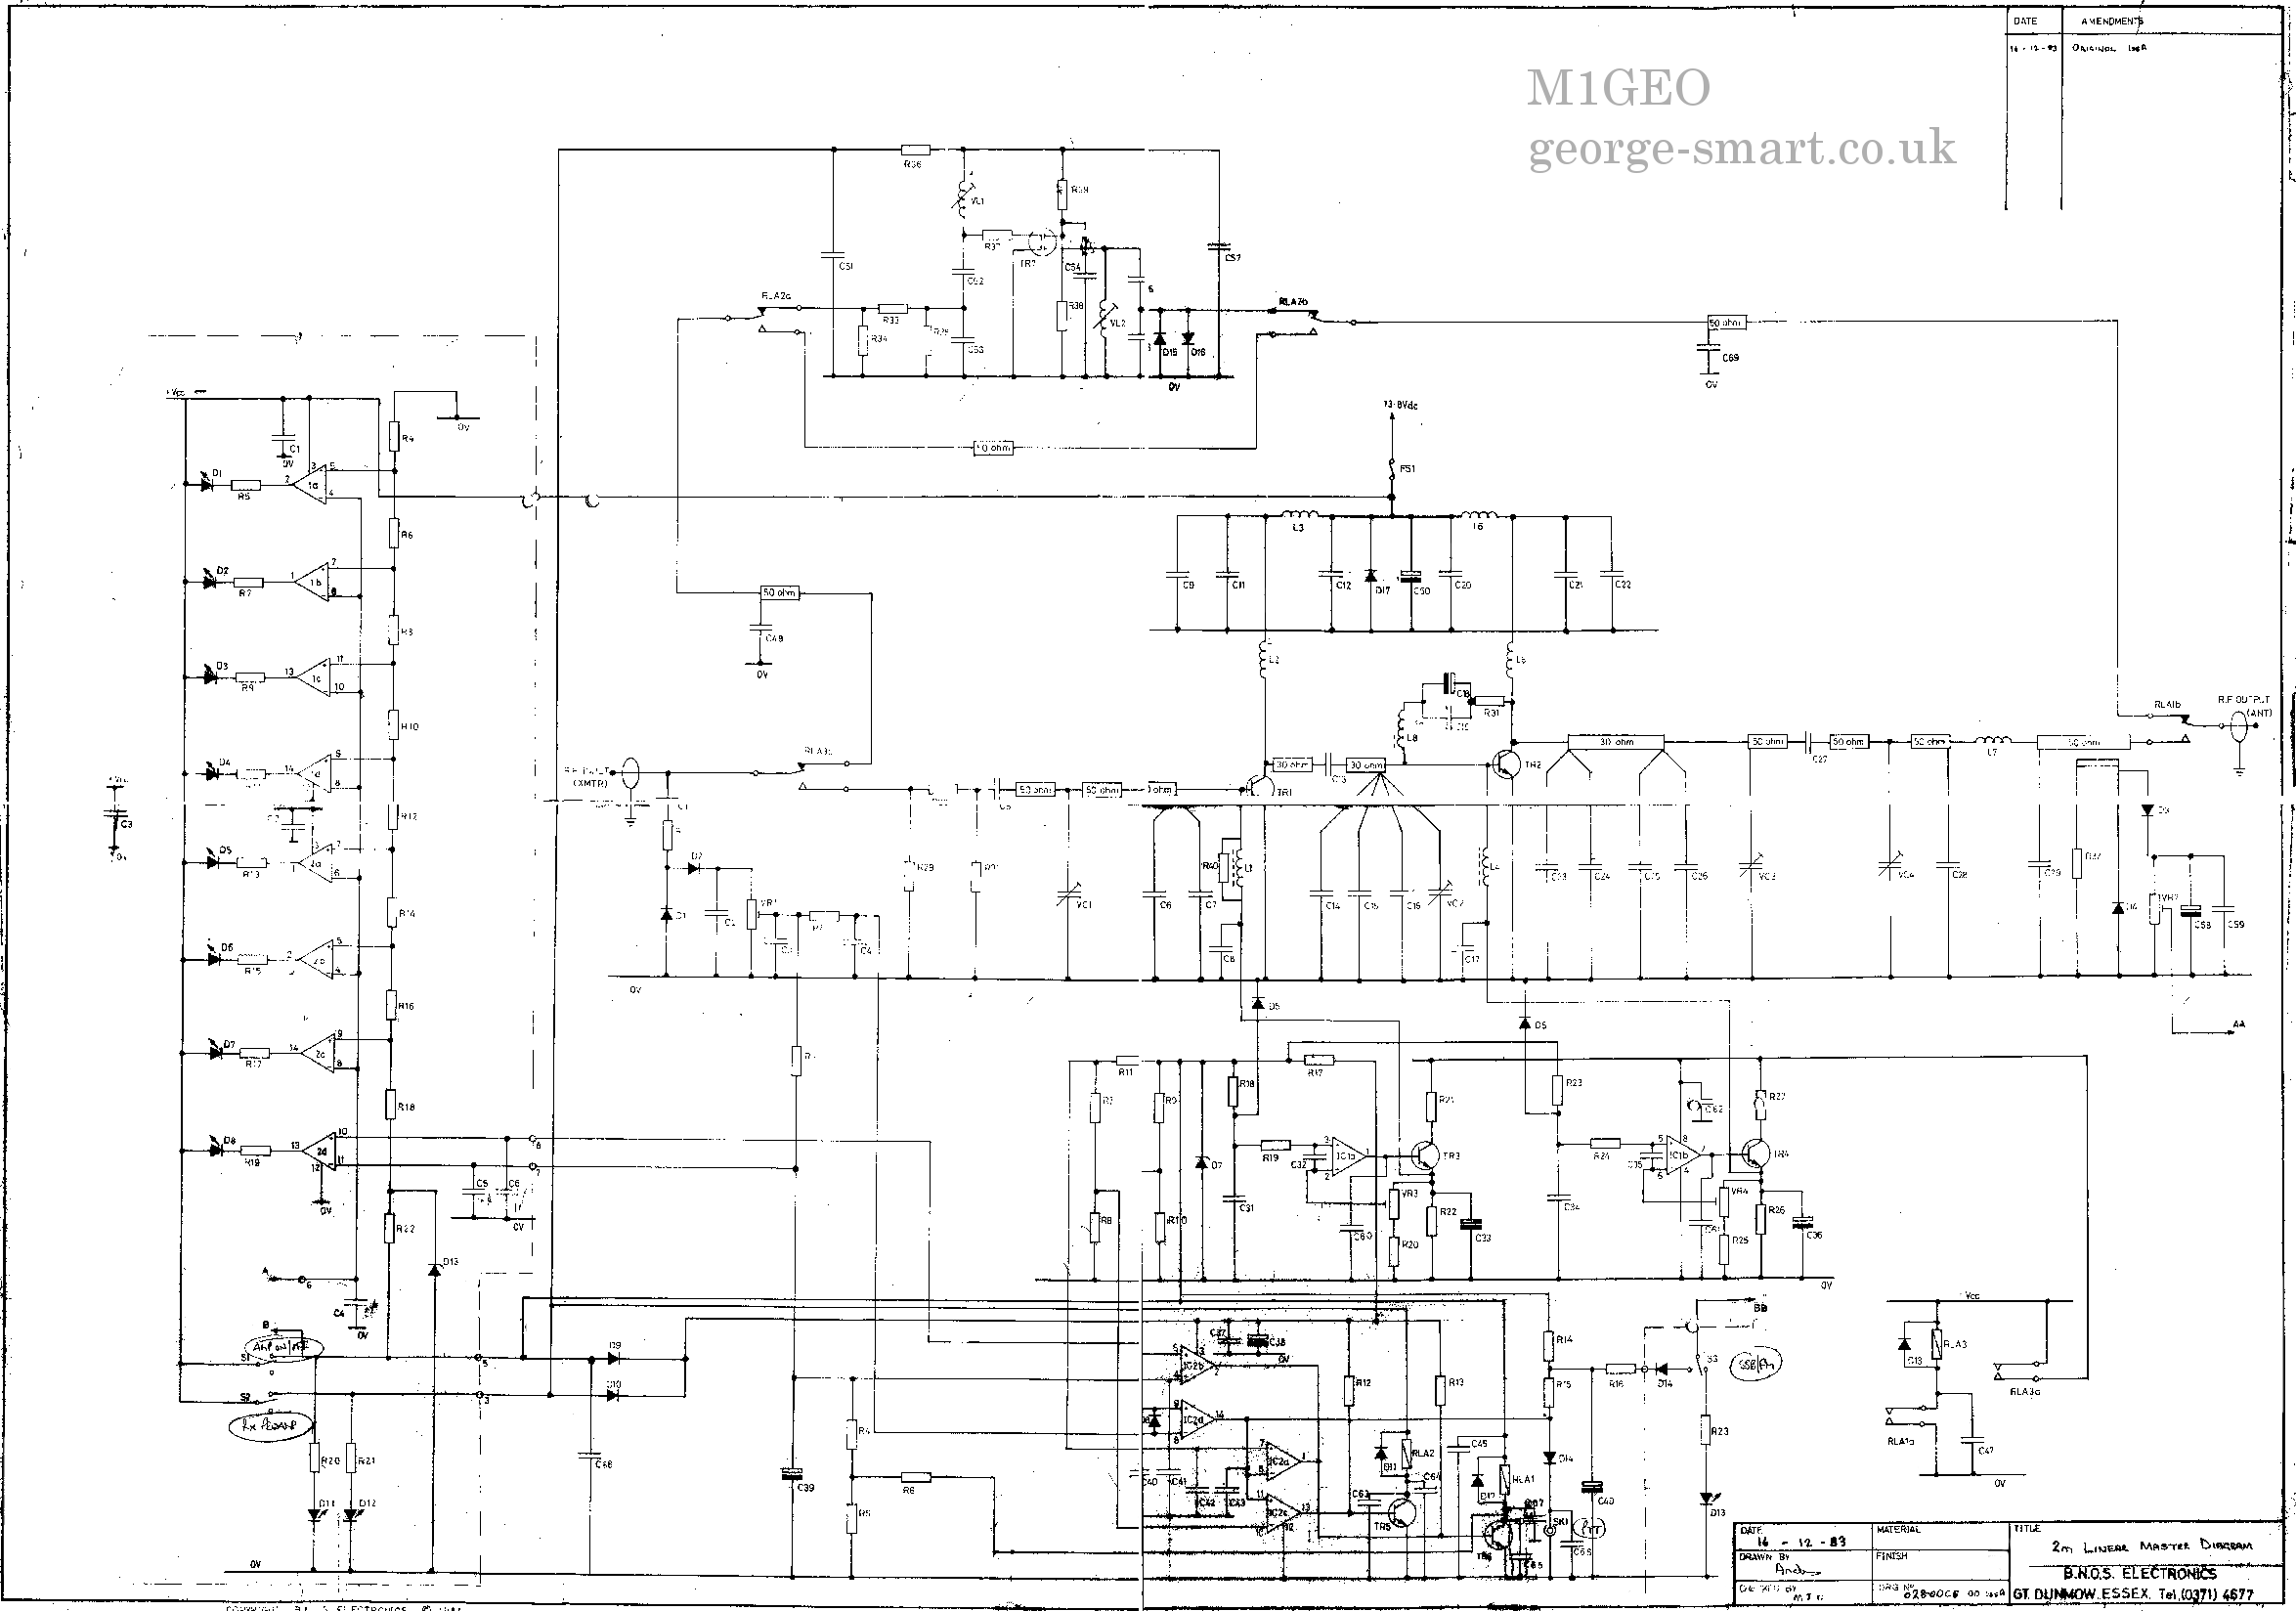 Bnos Lpm144 10 100 Repair George Smart M1geo Samsung Galaxy S Circuit Diagram The First Thing I Did Was Cross Correlate What Had With Click For Full Size Image Download